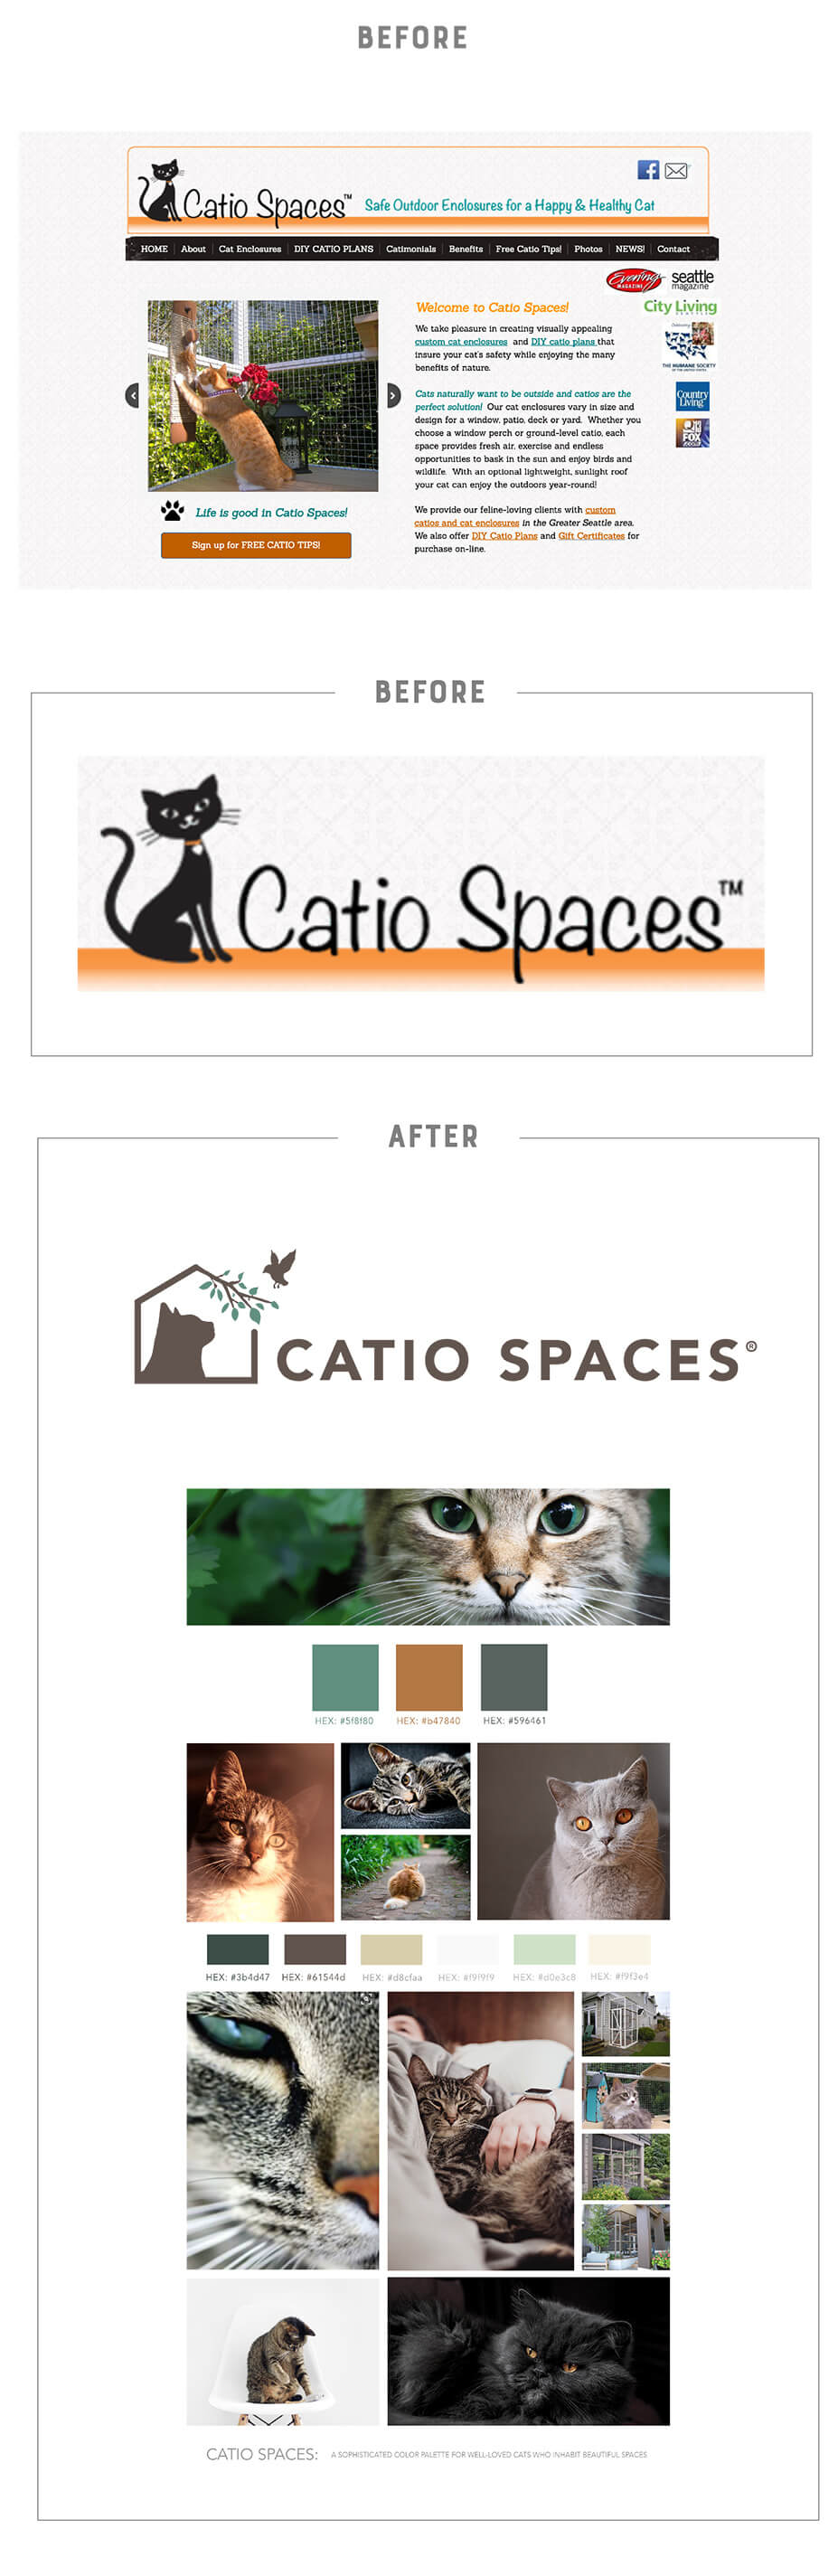 Catio spaces website before branding